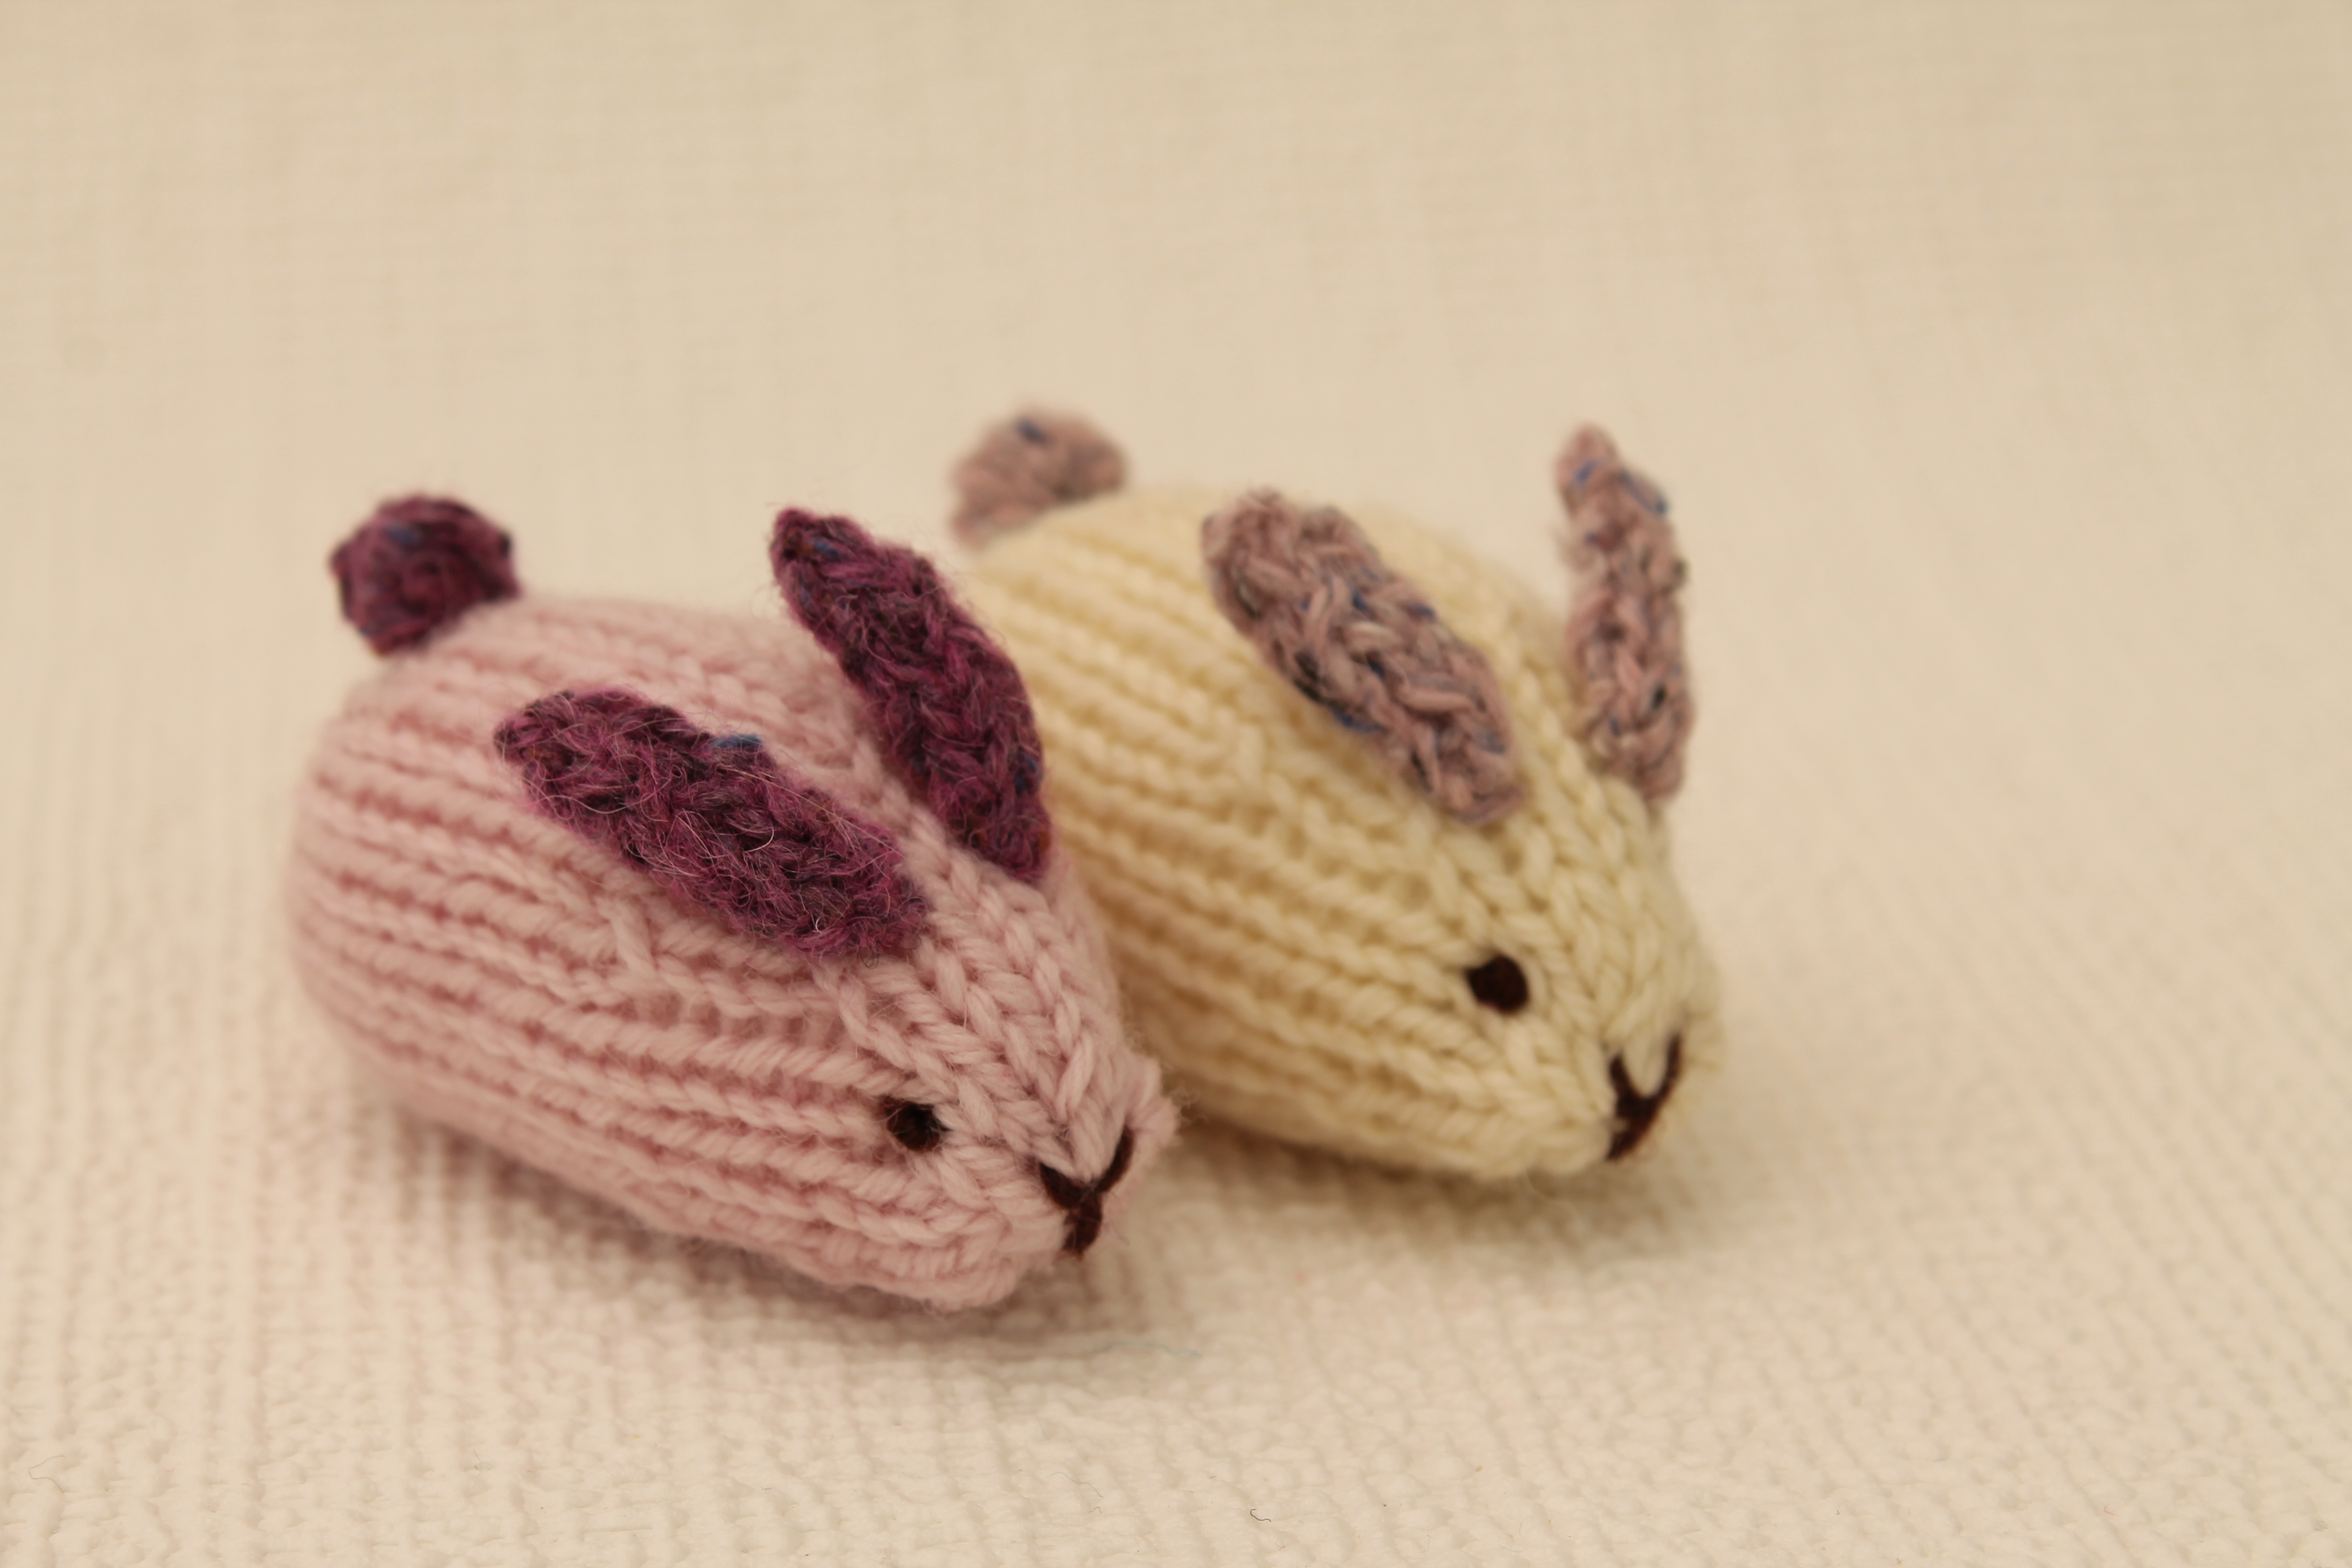 Knitting Easter Bunnies : Little easter bunnies knits by sachi